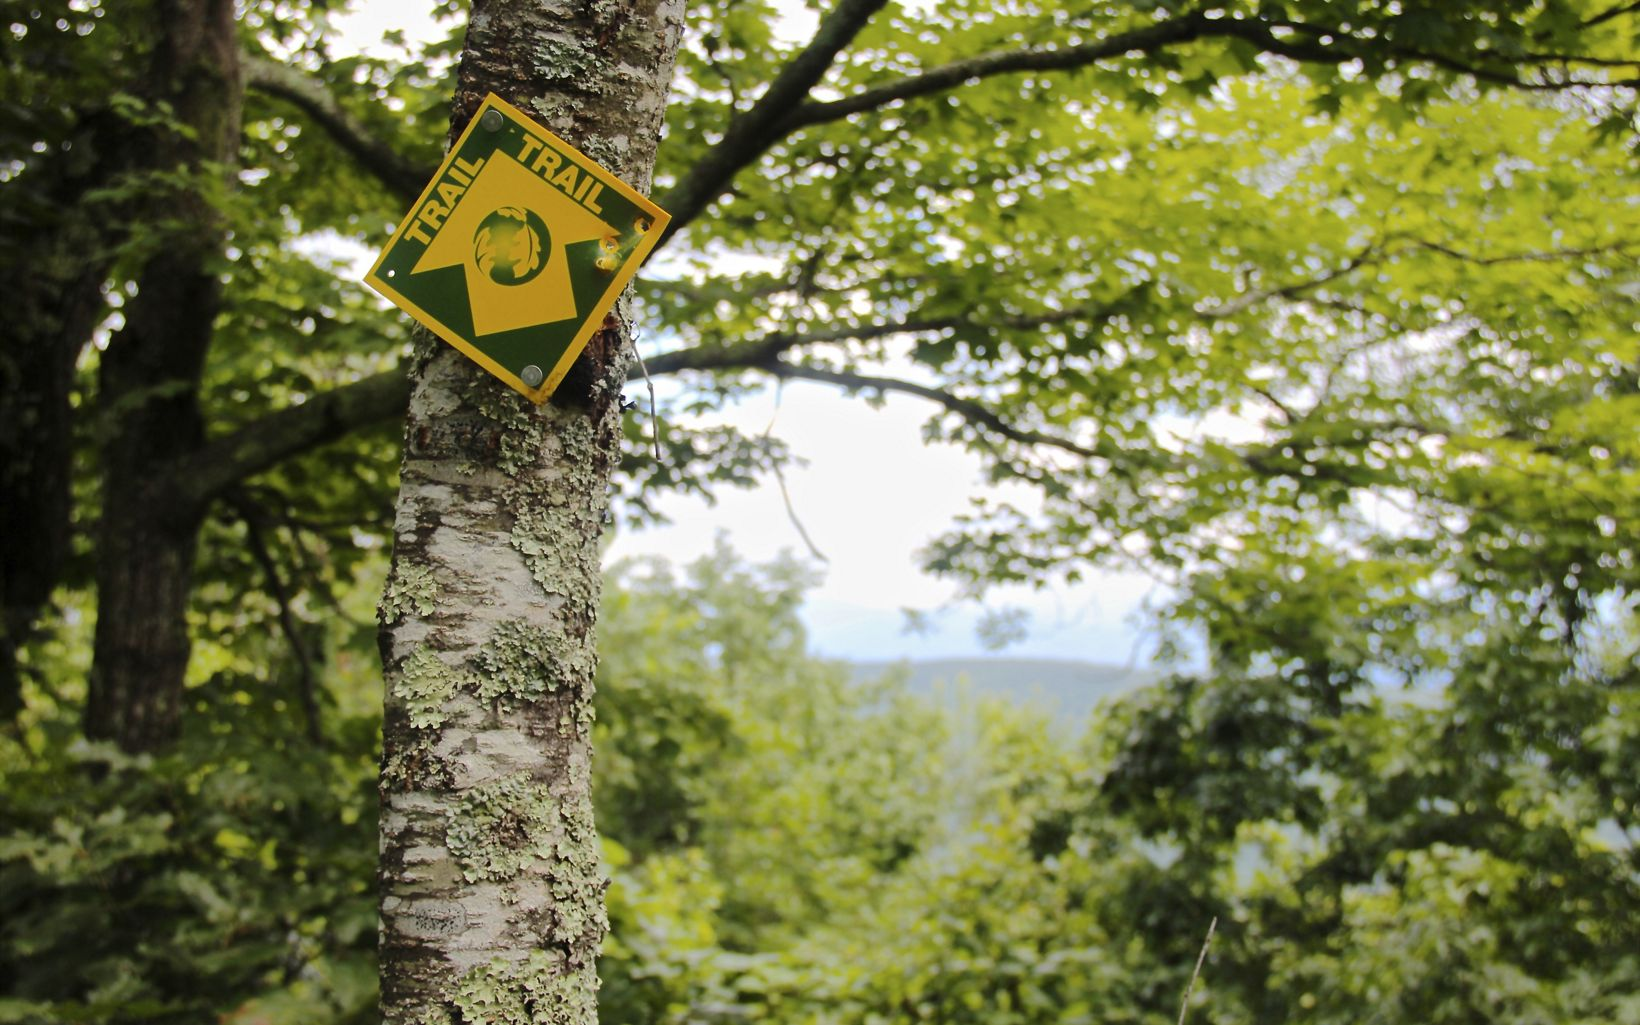 A yellow and green trail blaze is nailed to a moss covered tree trunk. A mountain ridge is visible in the distance through an opening in the leaves.